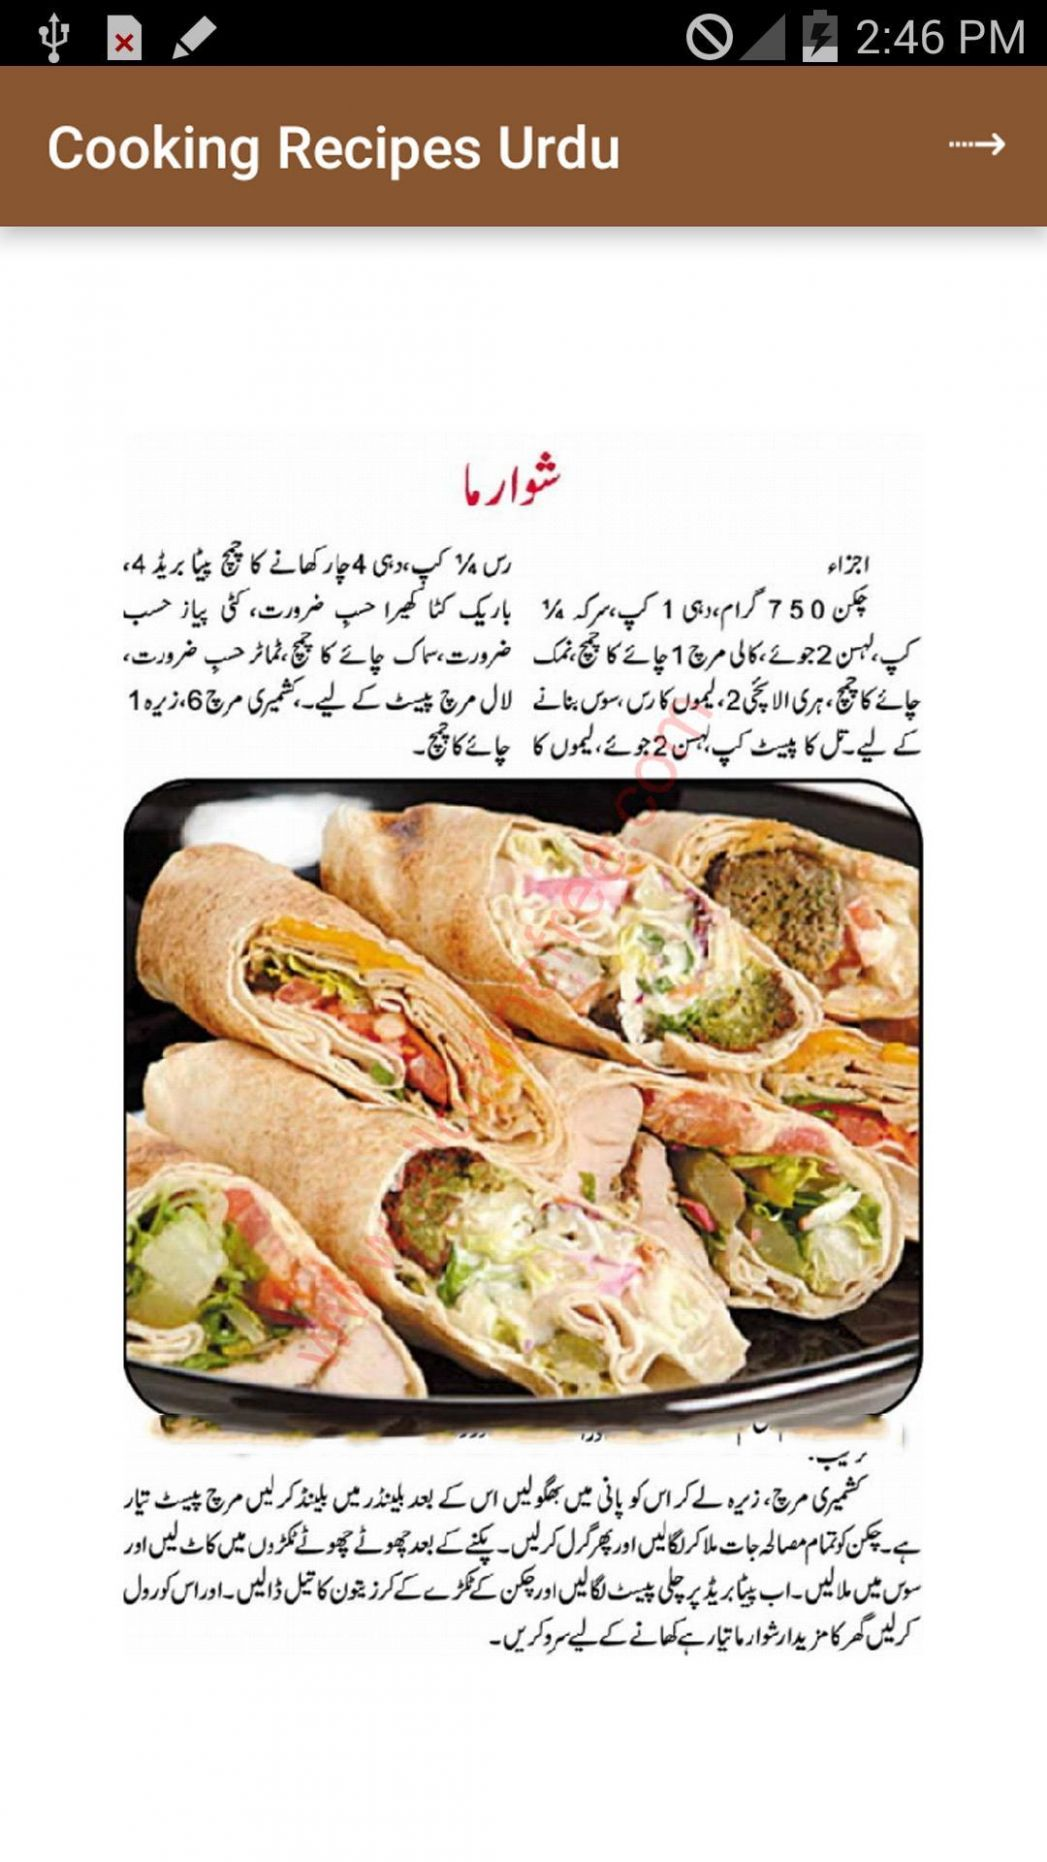 Cooking Recipes in Urdu for Android - APK Download - Cooking Recipes Videos In Urdu Download